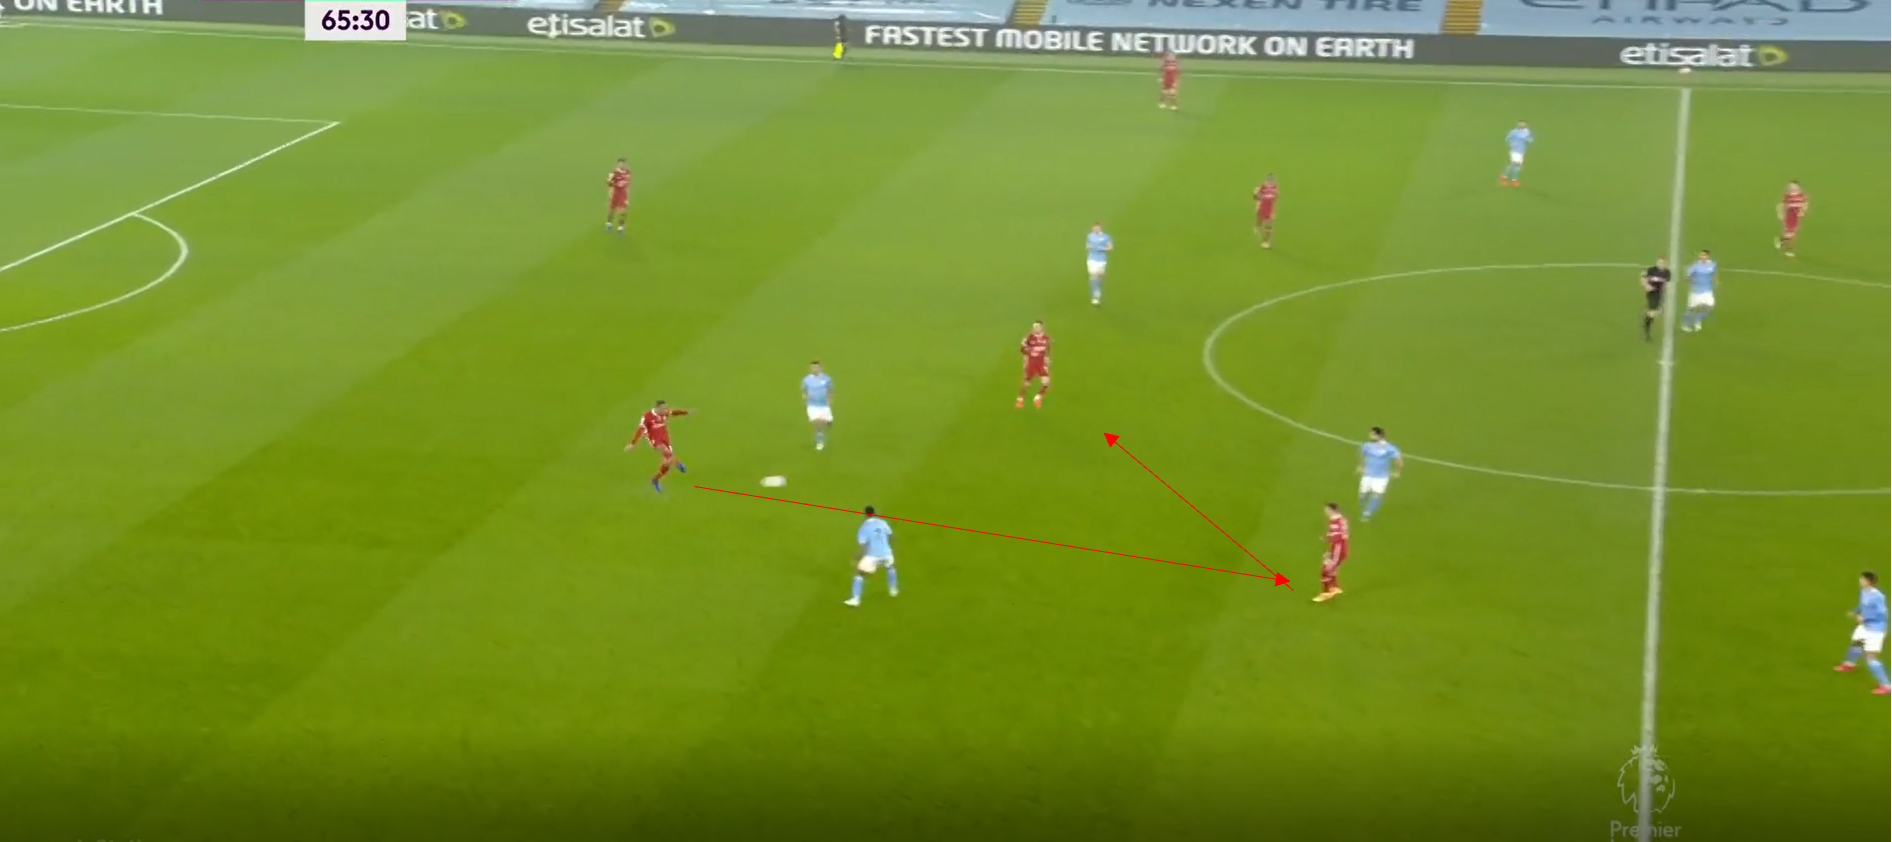 Premier League 2020/21: Manchester City vs Liverpool- tactical analysis tactics